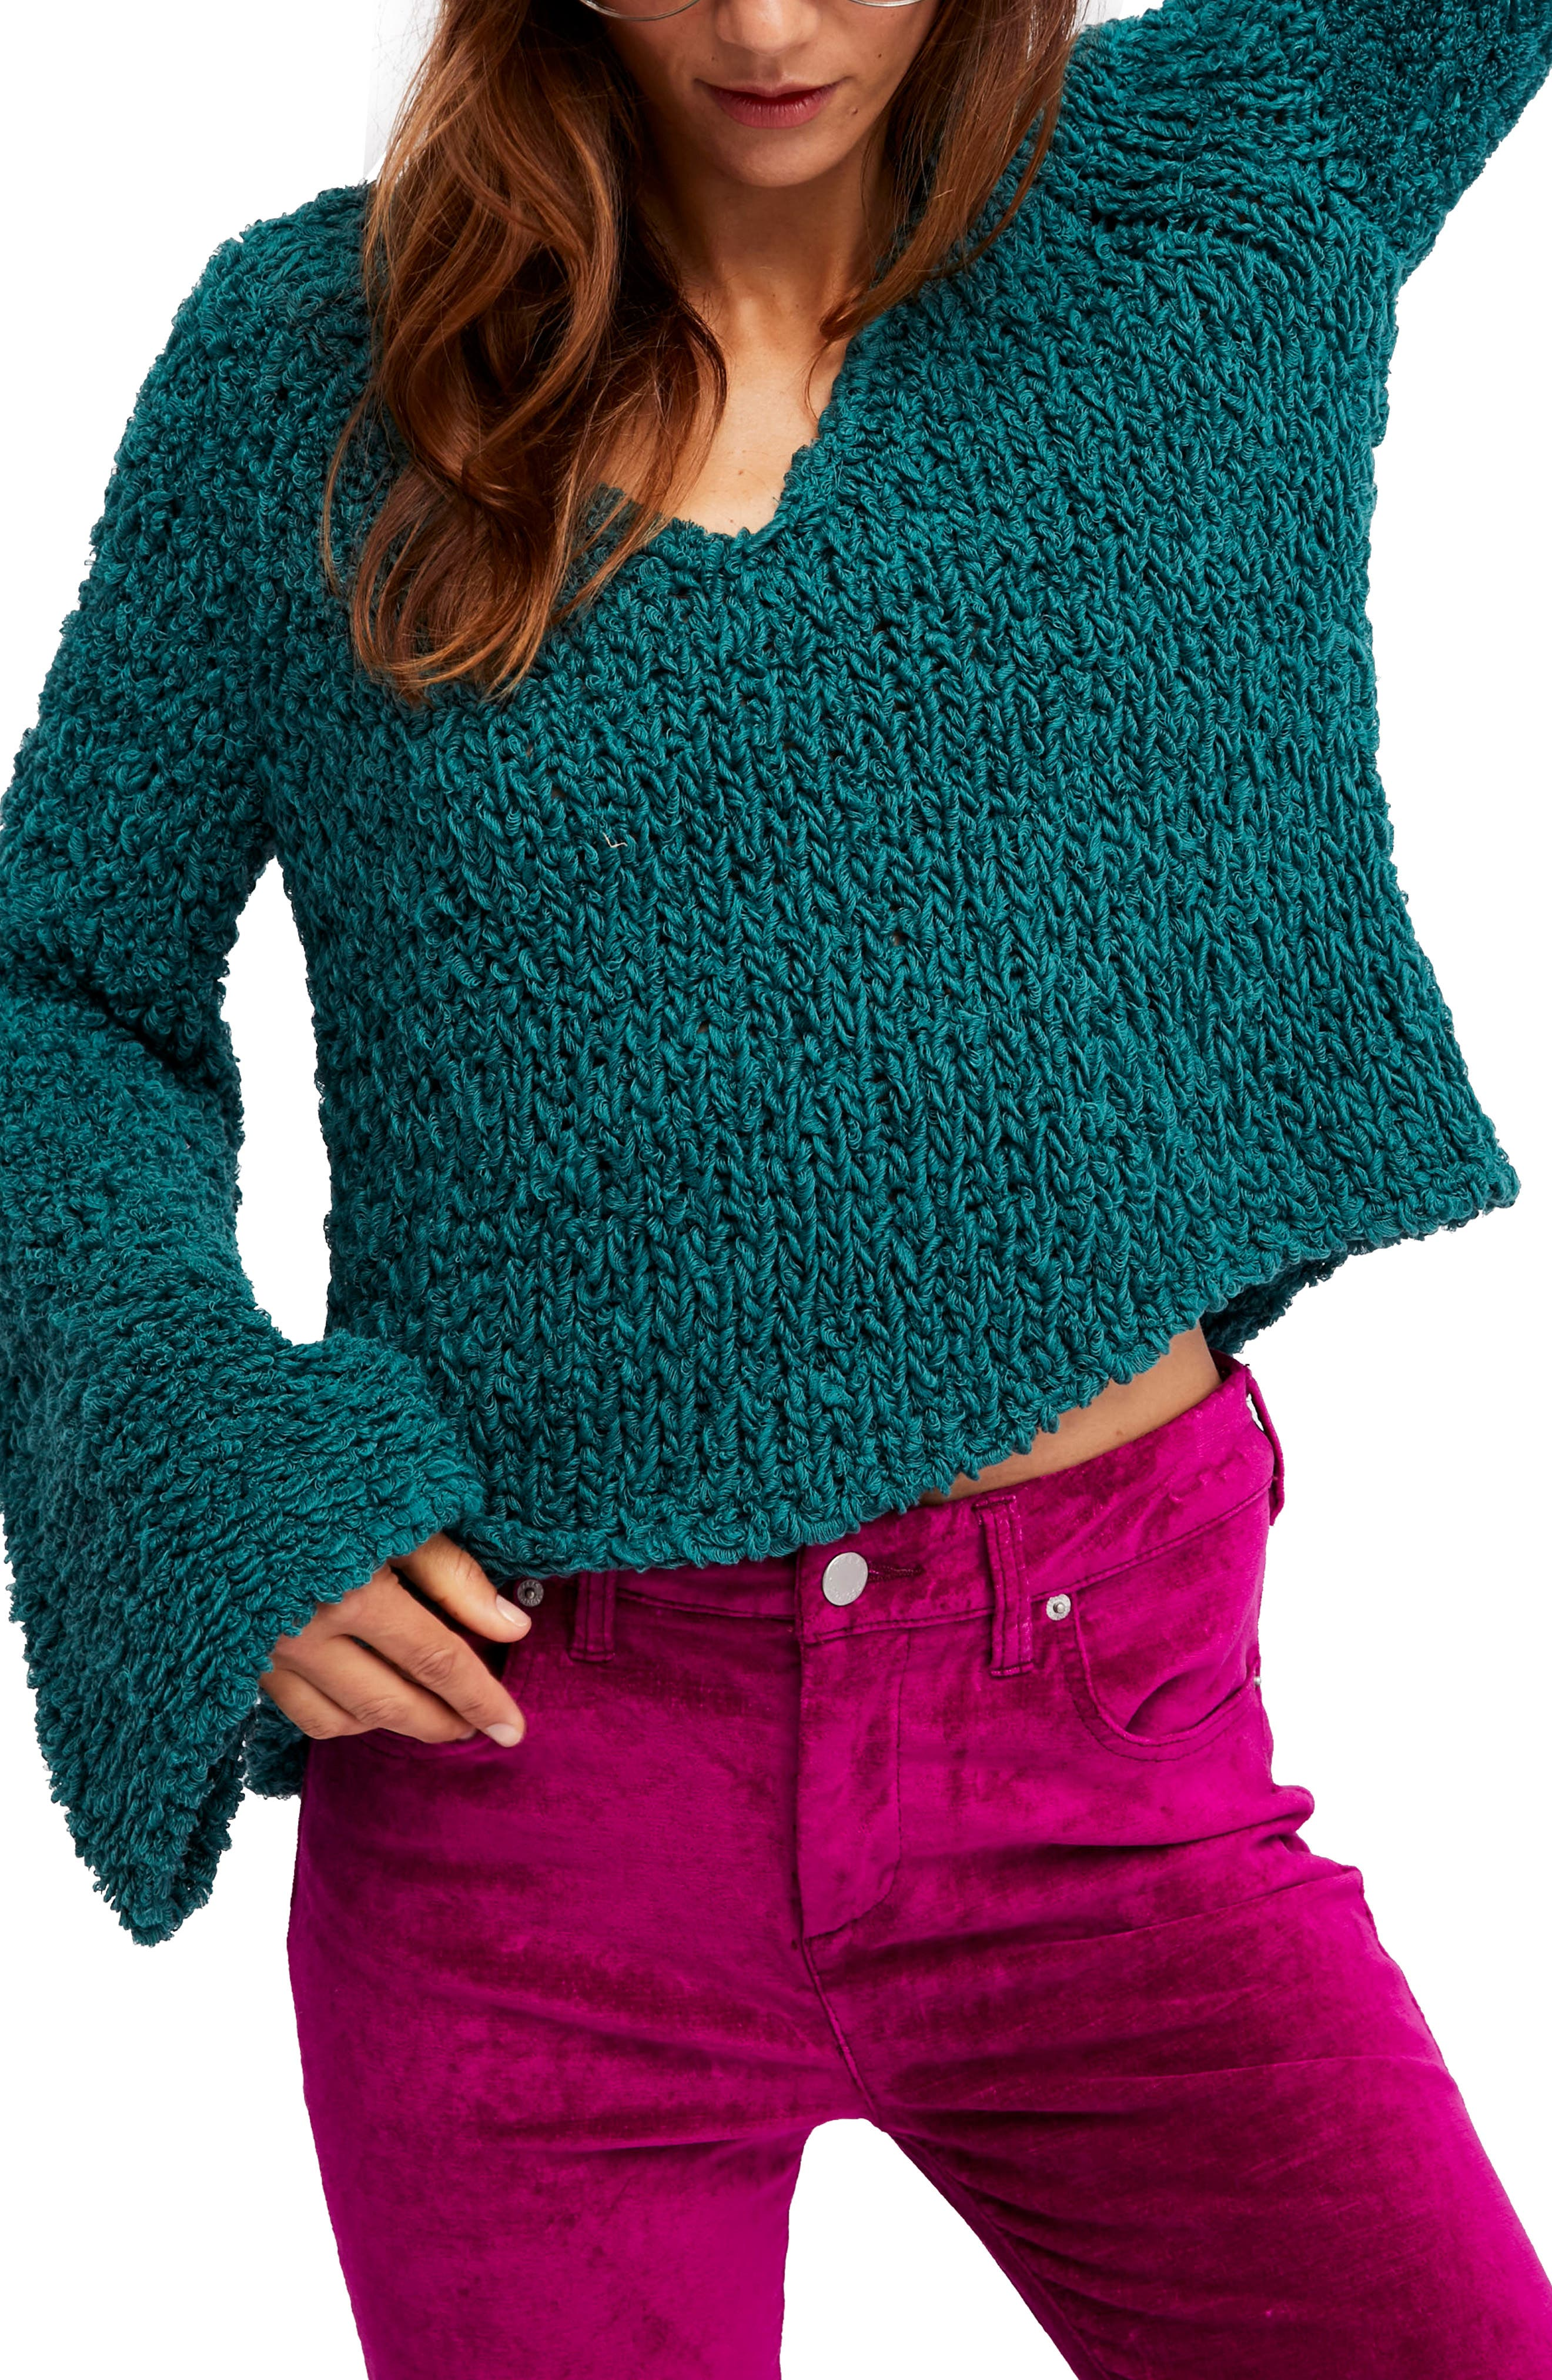 Sand Dune Sweater,                             Main thumbnail 1, color,                             Green